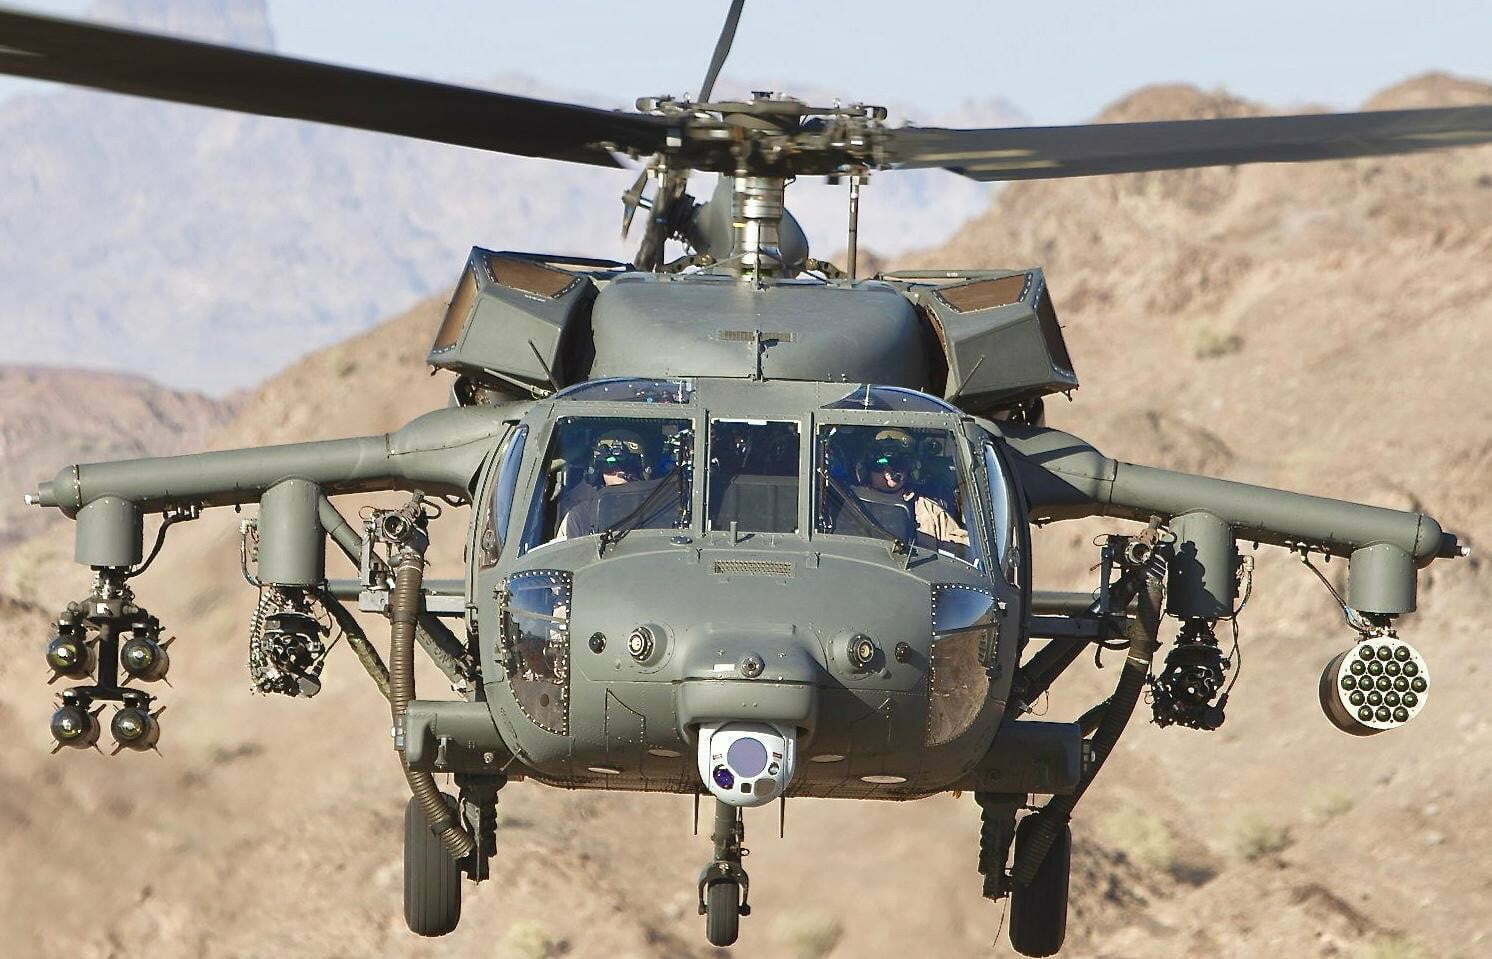 MH-60L DAP armed helicopter